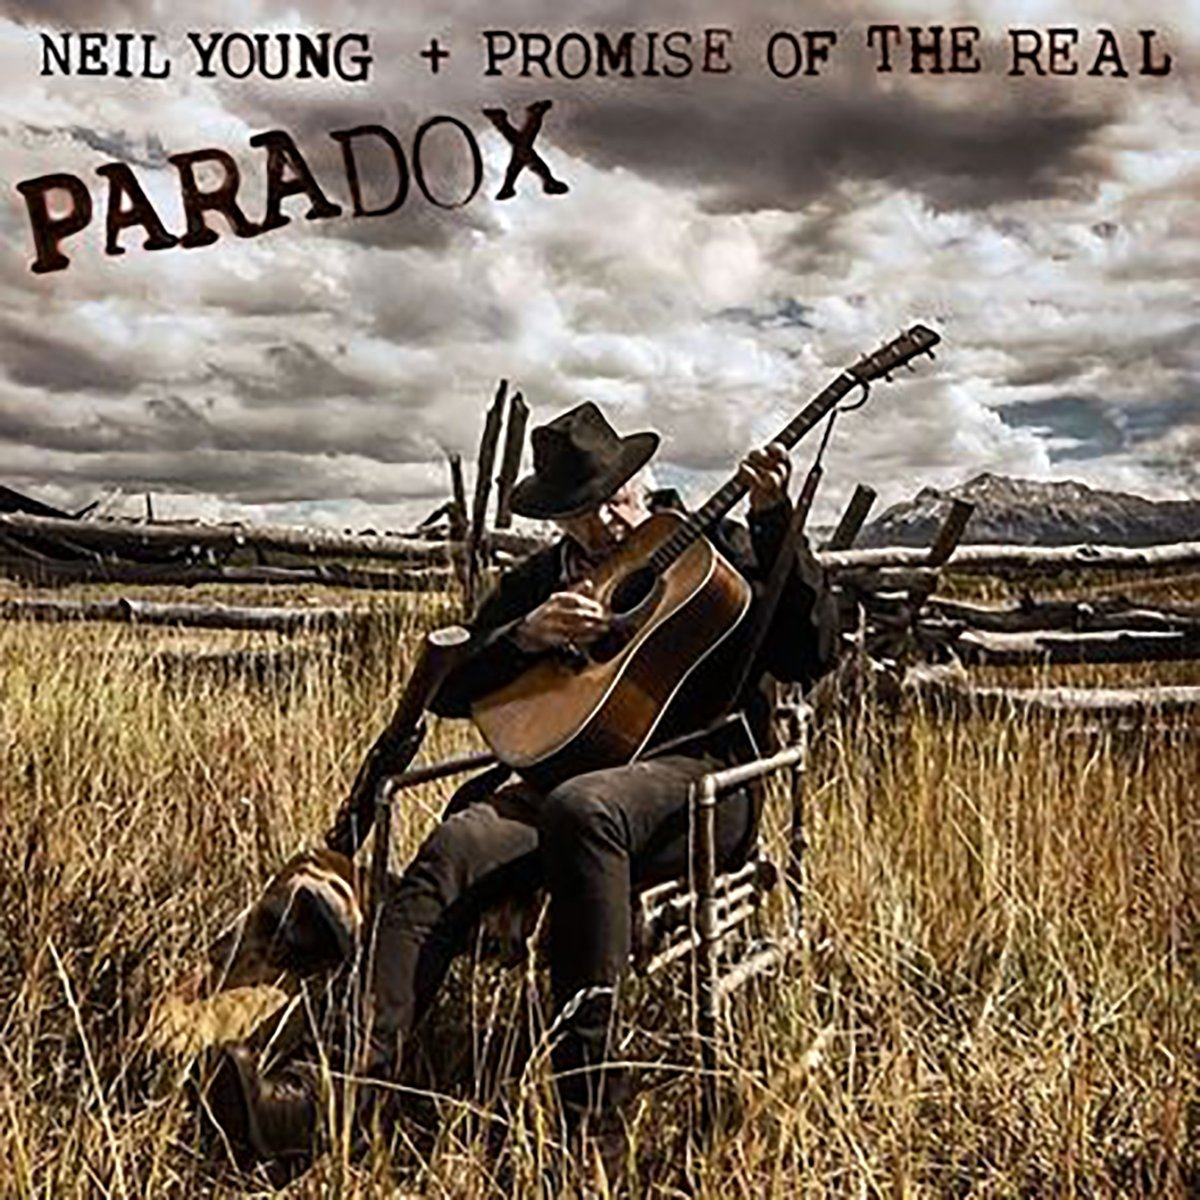 Neil & Promise Of The Real Ost/young - PARADOX OST | Vinyl kopen